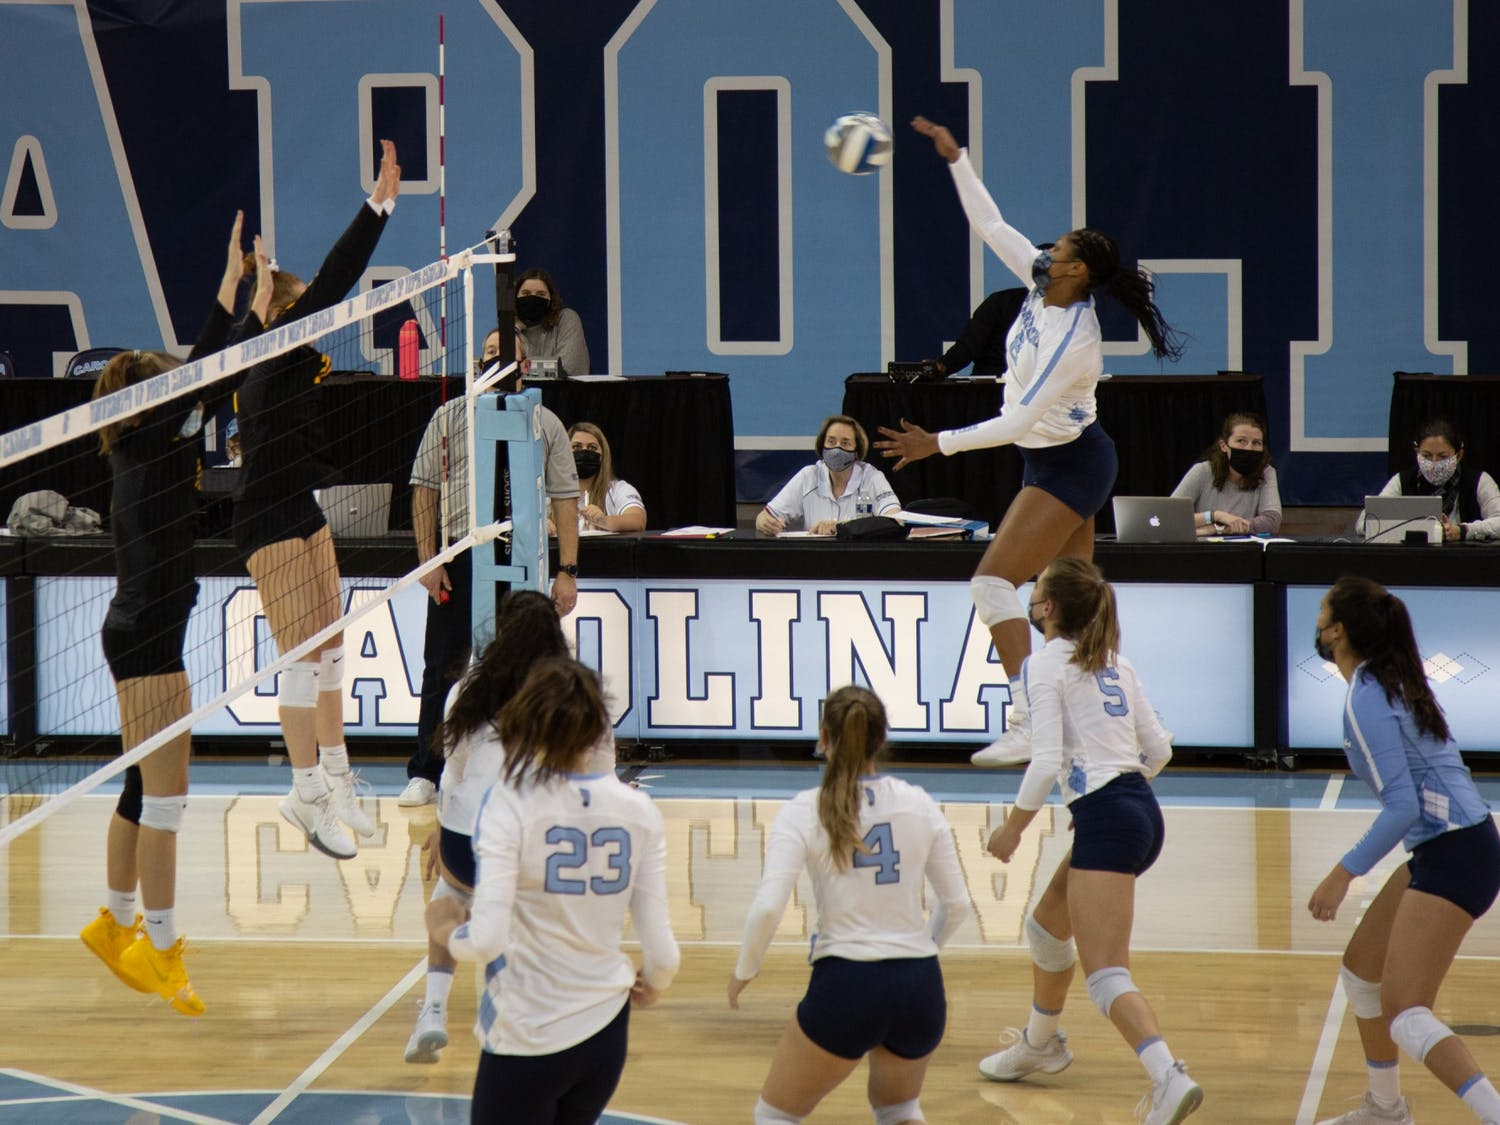 Sophomore middle blocker Skyy Howard (8) prepares to send the ball to the Appalachian State University volleyball team in a game on Thursday, Feb. 18, 2021 in Carmichael Arena. The Tar Heels beat the Mountaineers 3-0.